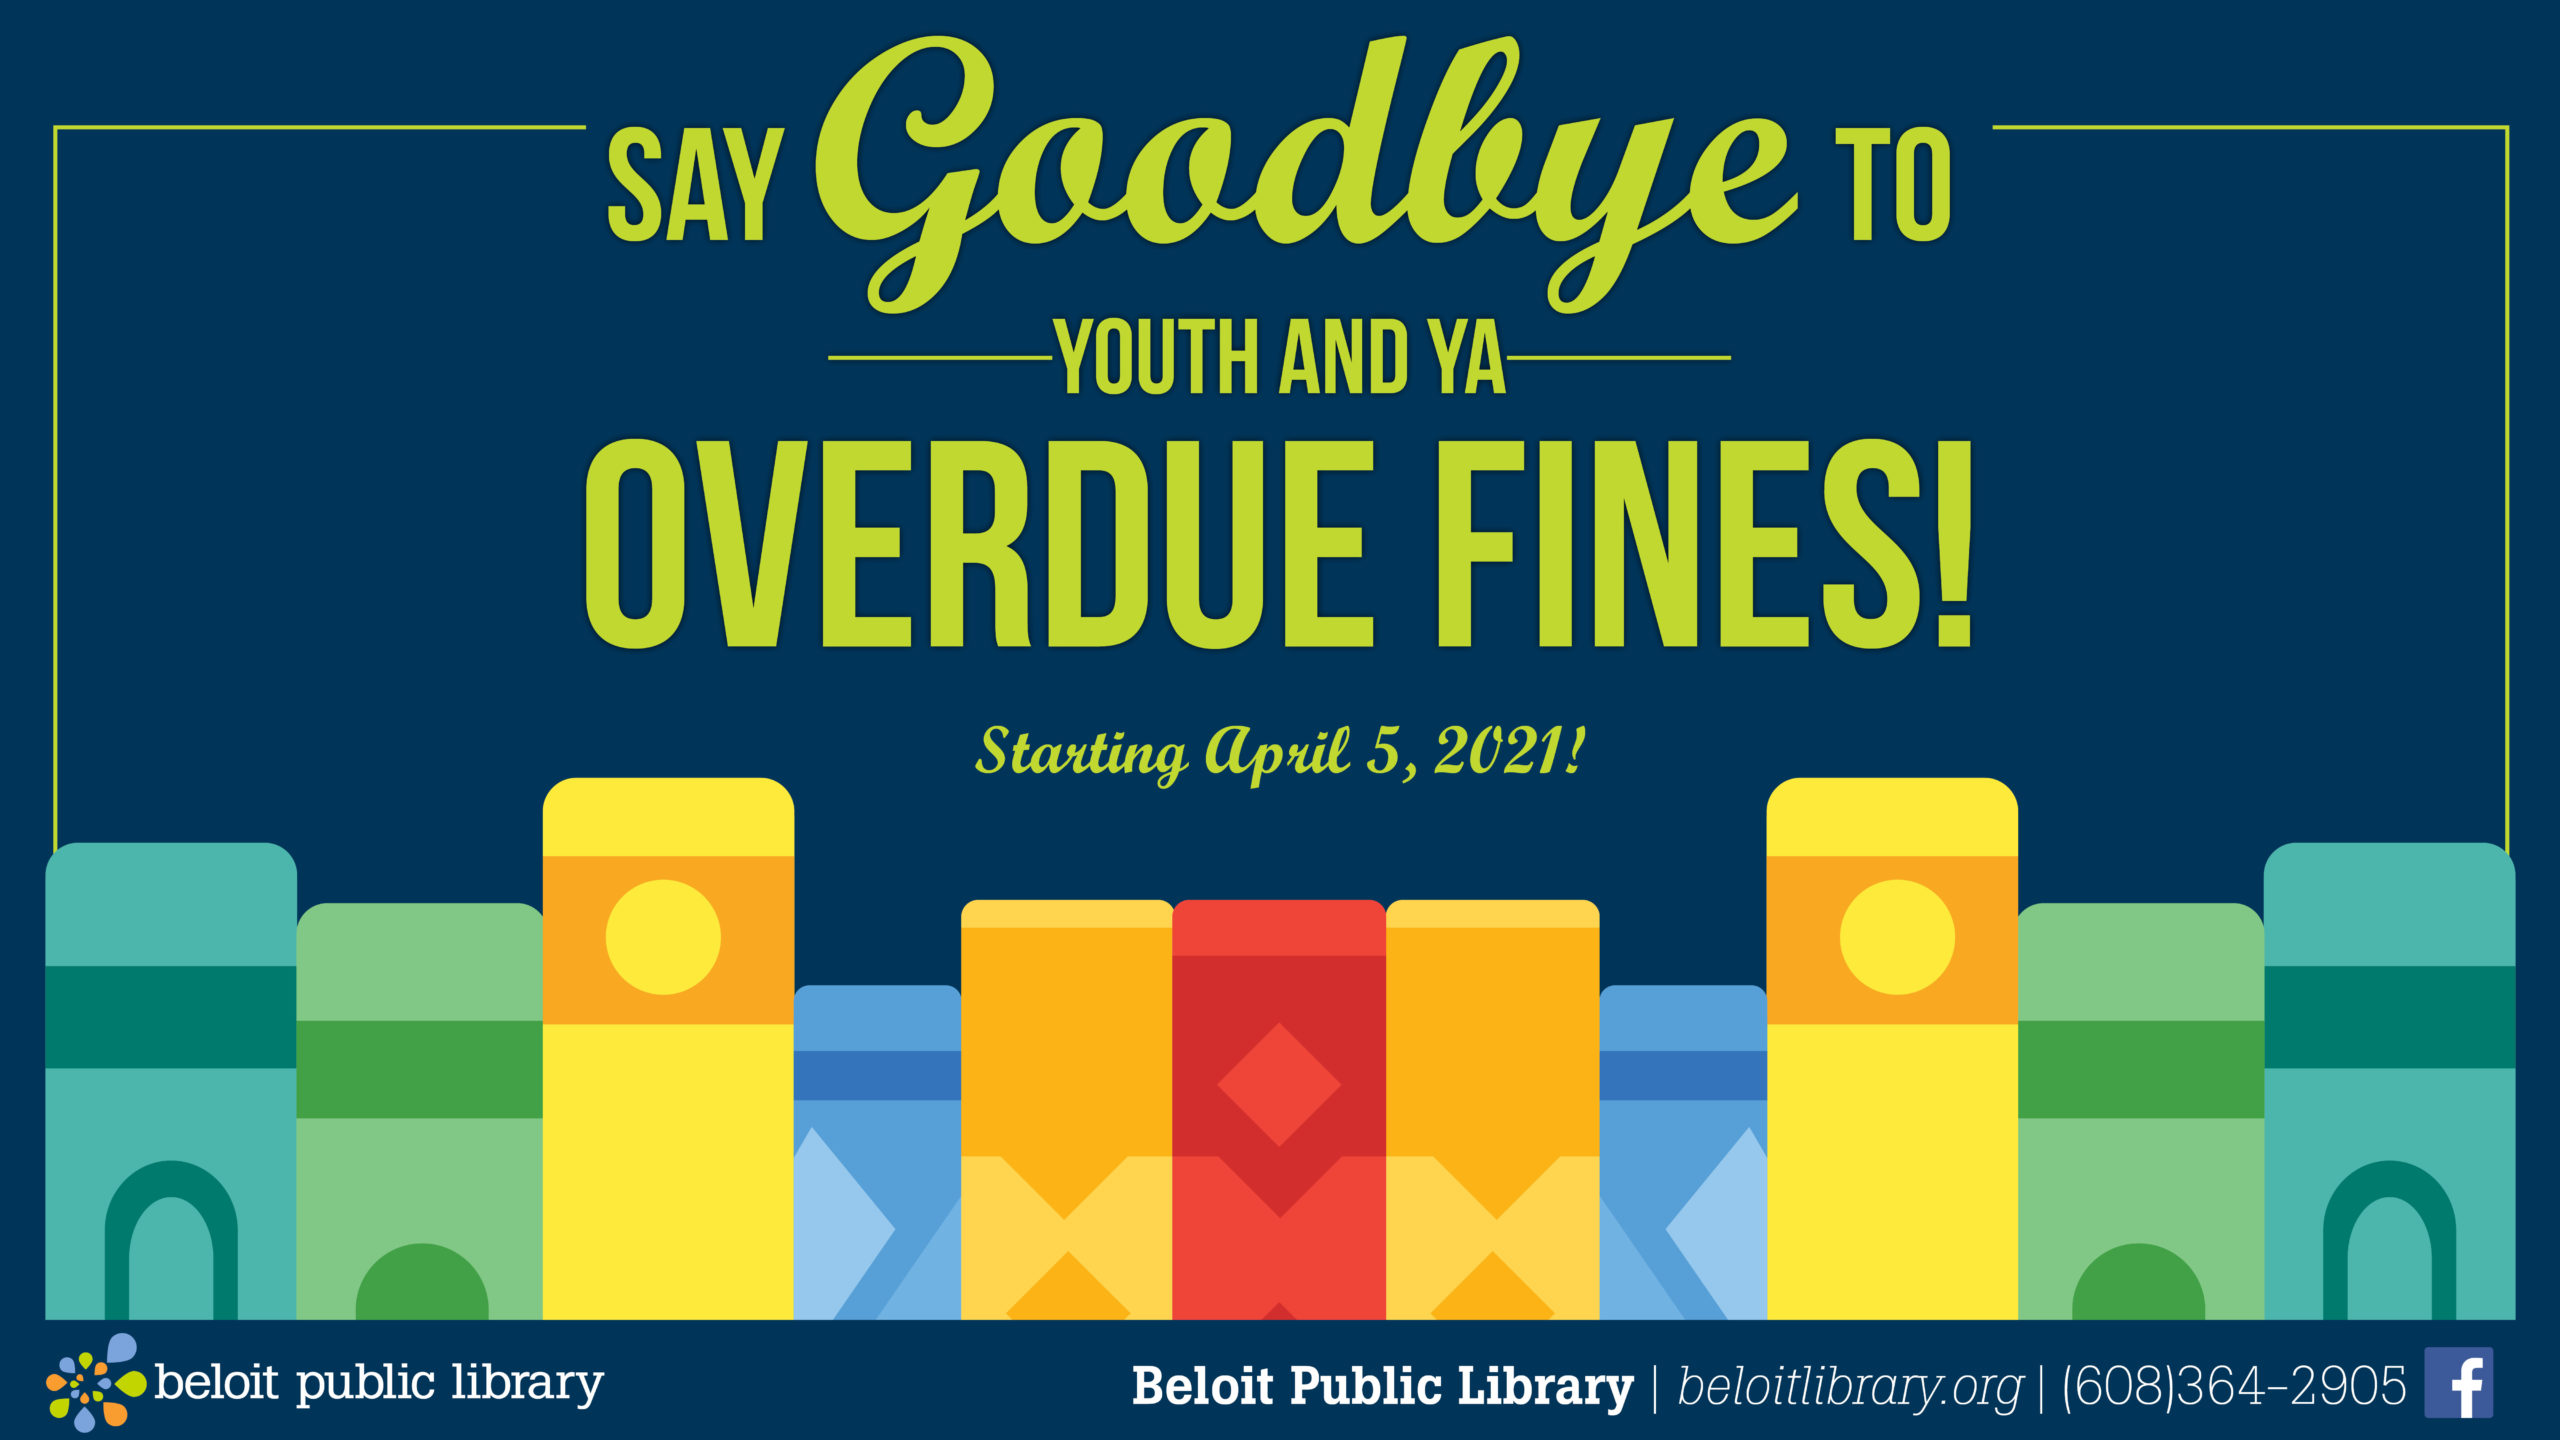 """Book spines and """"Say goodbye to youth and young adult overdue fines at Beloit Public Library"""""""